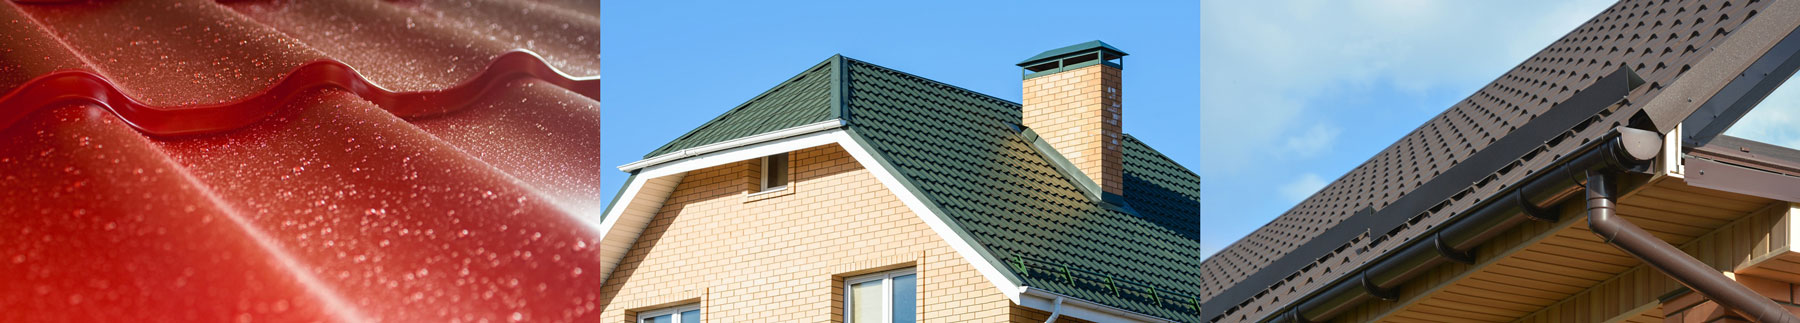 Roofing Service Sydney